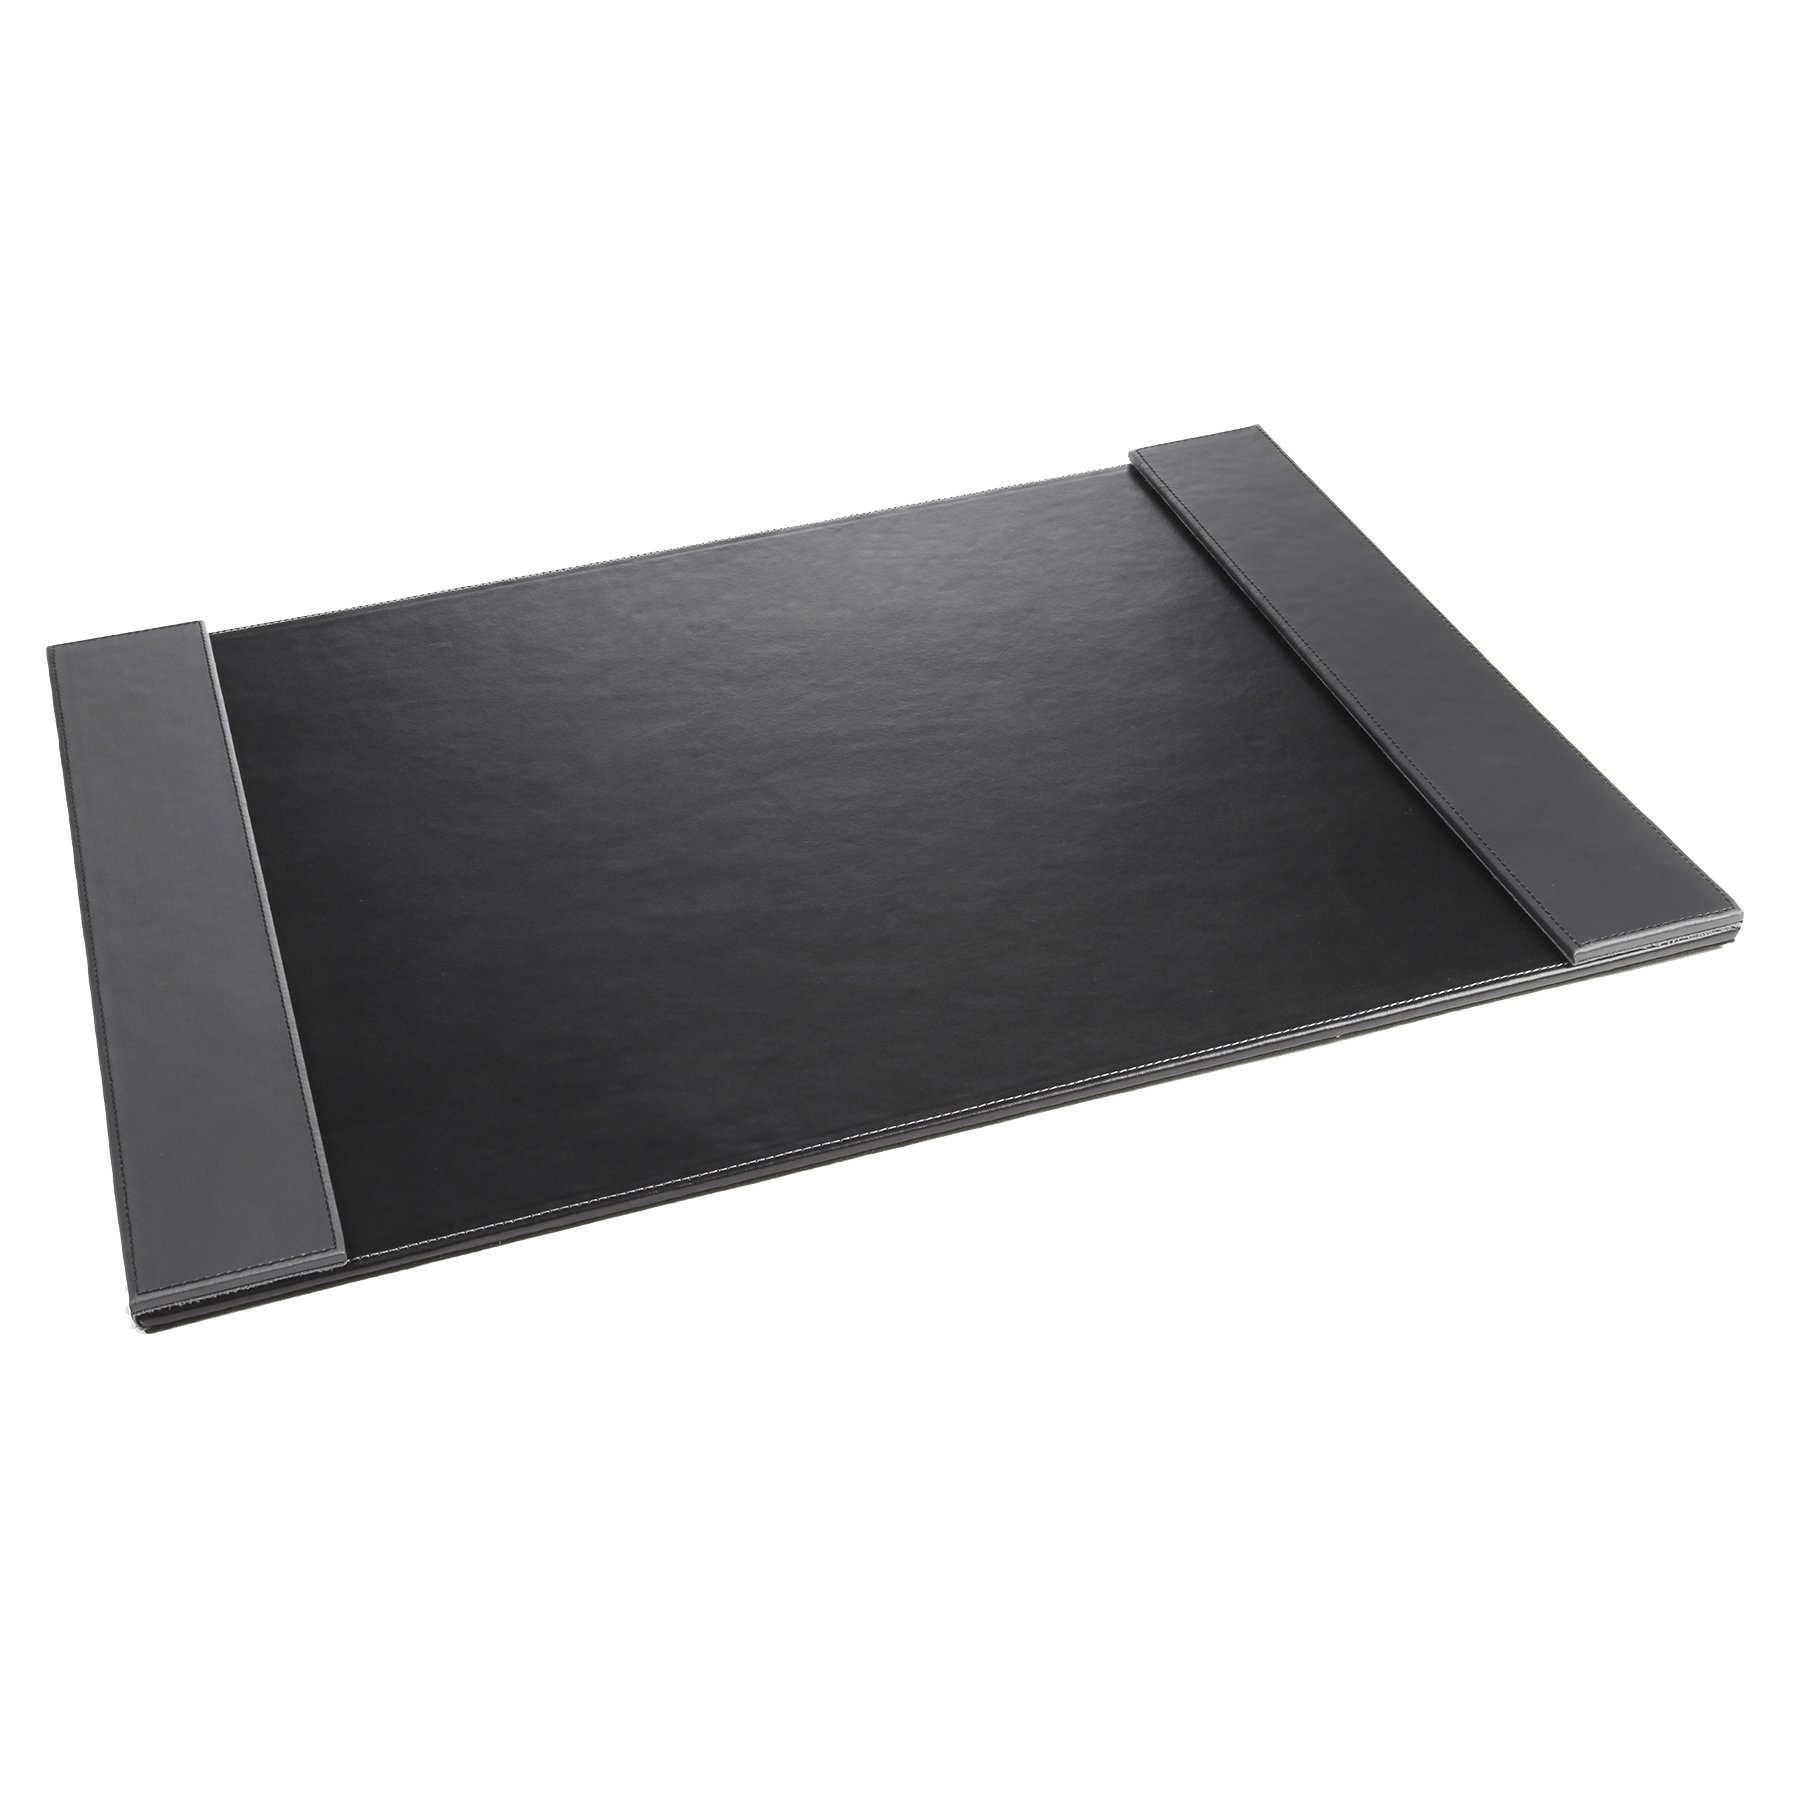 Artistic 24'' x 19'' Monticello Executive Leather-Like Desk Pad with Side Rails, Black/Grey Side Rails